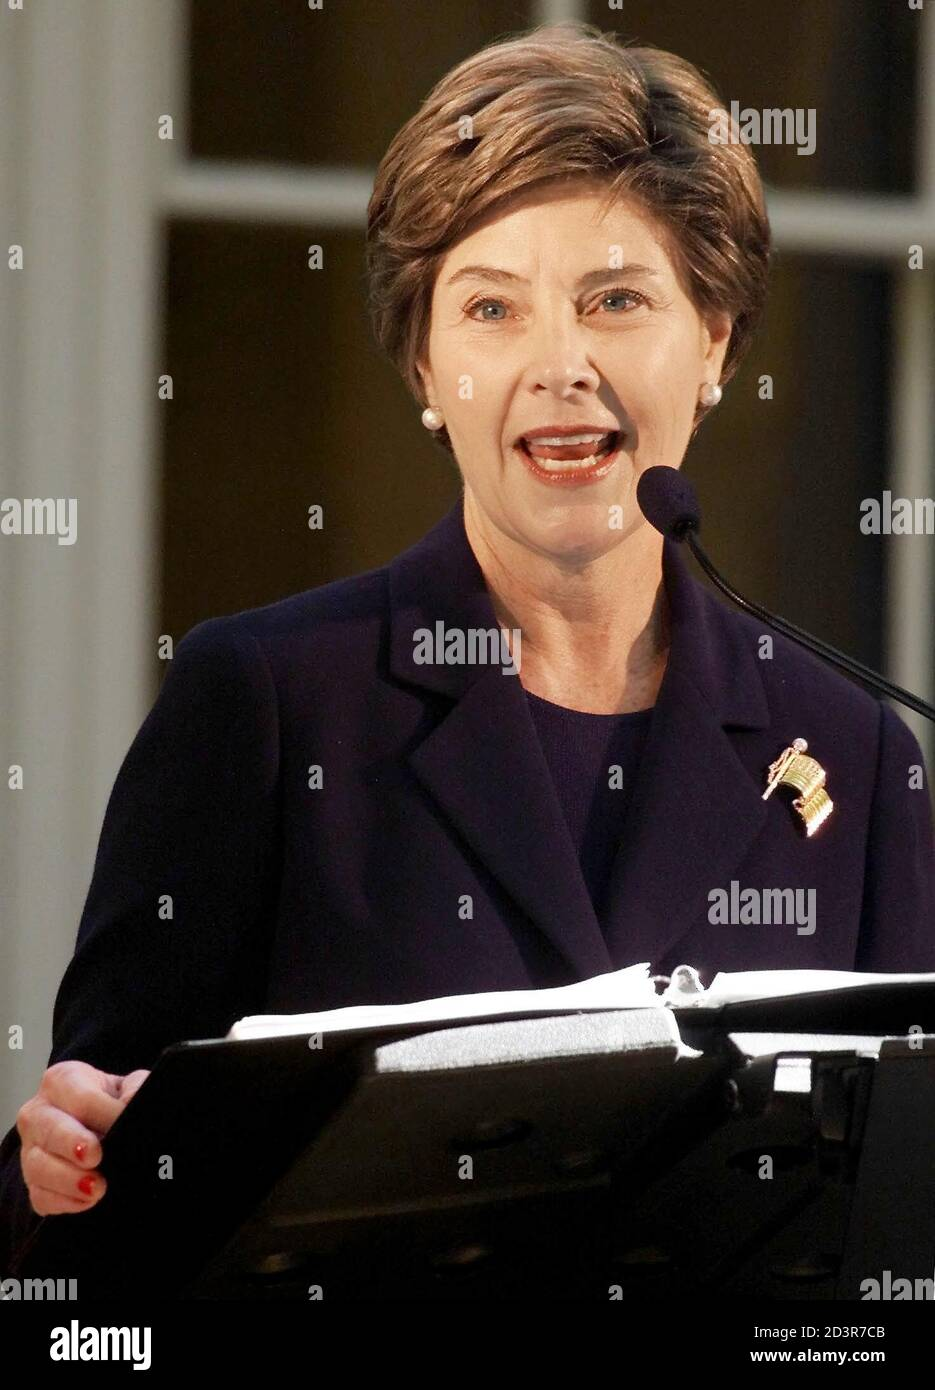 United States first lady Laura Bush speaks at grand opening ceremonies for the newly restored McLellan House and L.D.M Sweat Memorial Galleries at the Portland Museum of Art, October 5, 2002 in Portland, Maine. Stock Photo